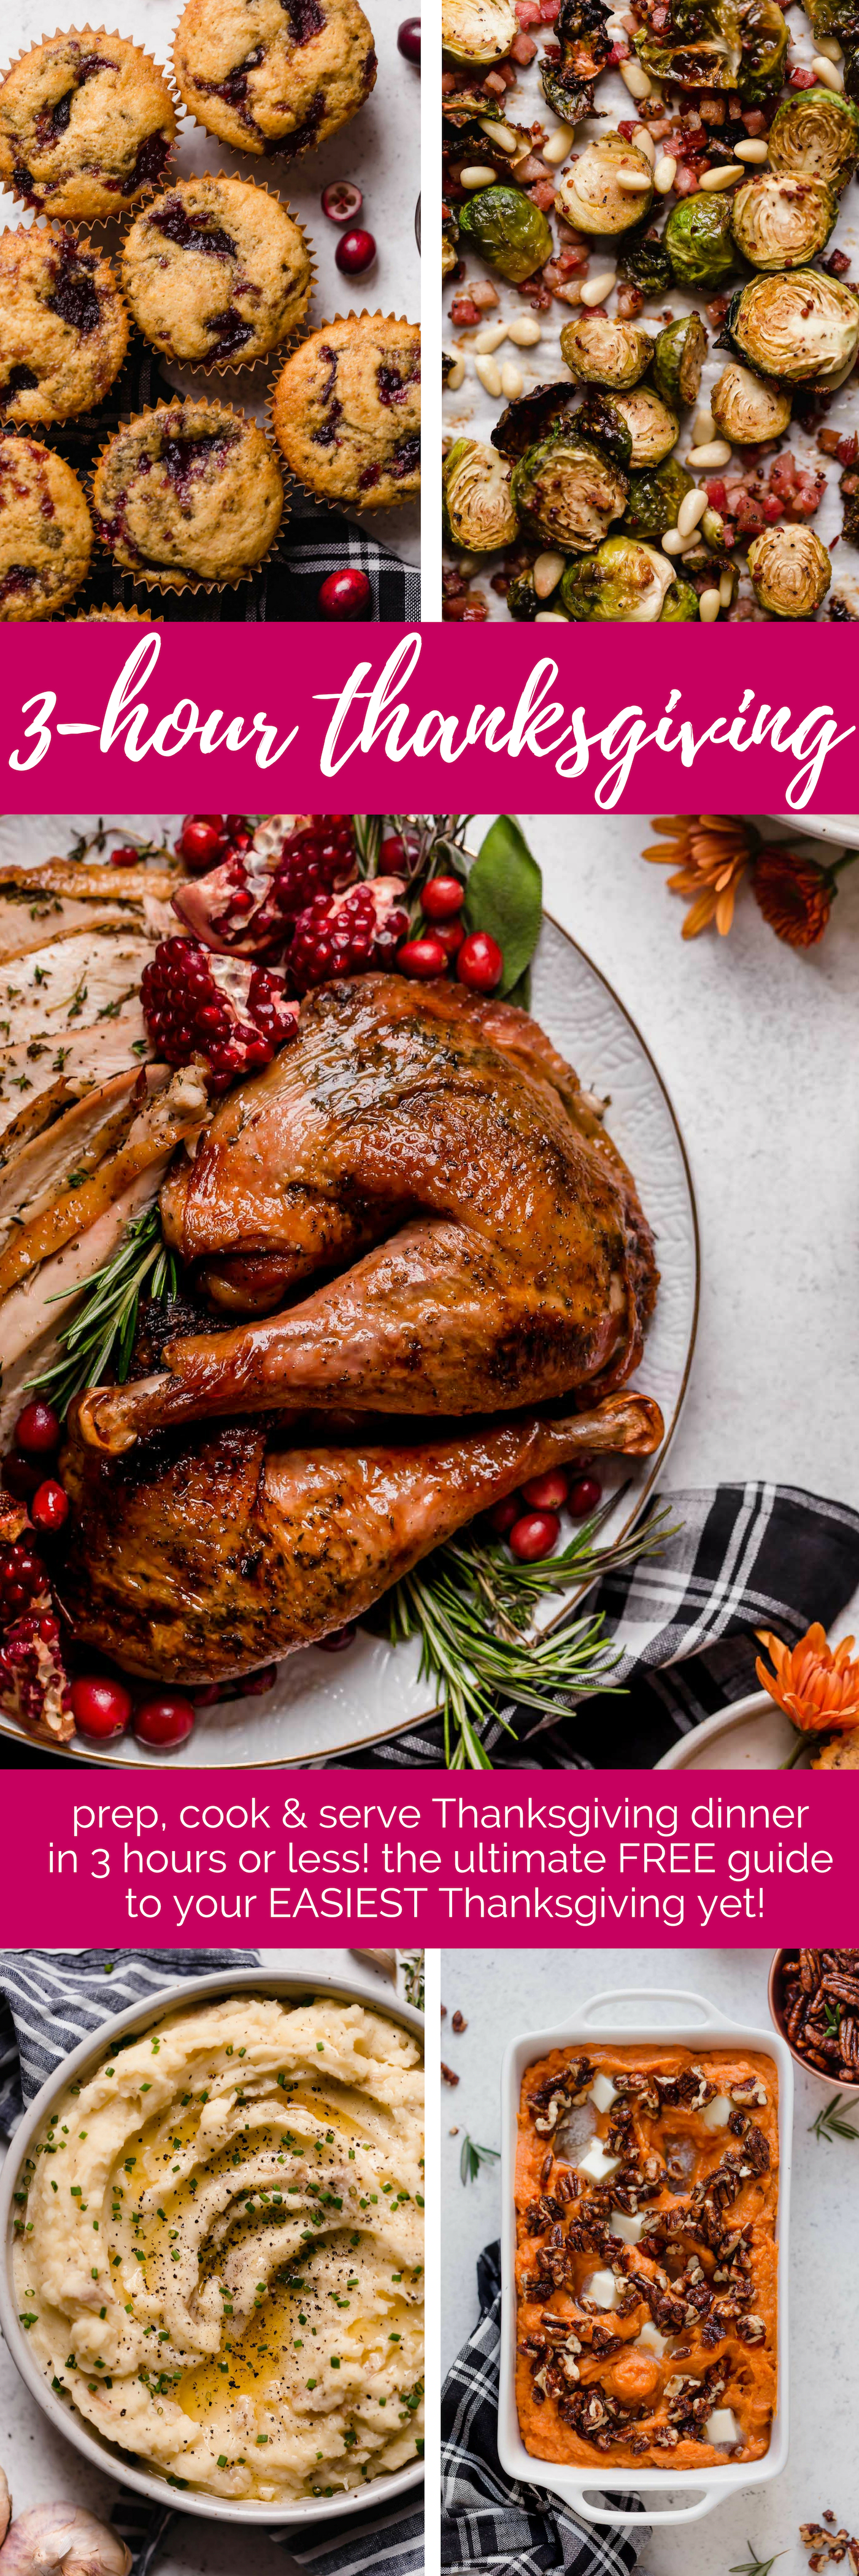 3-Hour Thanksgiving: the ultimate guide for your easiest Thanksgiving yet. this FREE 3-Hour Thanksgiving Guide will help you prep, cook & serve Thanksgiving dinner in 3 hours or less! This guide includes an amazing Thanksgiving turkey recipe, the best buttermilk mashed potatoes, 3 easy Thanksgiving side dishes, & more! Say hello to your easiest holiday dinner yet! #thanksgiving #thanksgivingrecipes #thanksgivingmenu #thanksgivingmealplan #friensgivingrecipes #friendsgiving #holidaymeal #holidaydinner #holiday #turkeydinner #turkeyrecipe #easyturkeyrecipe